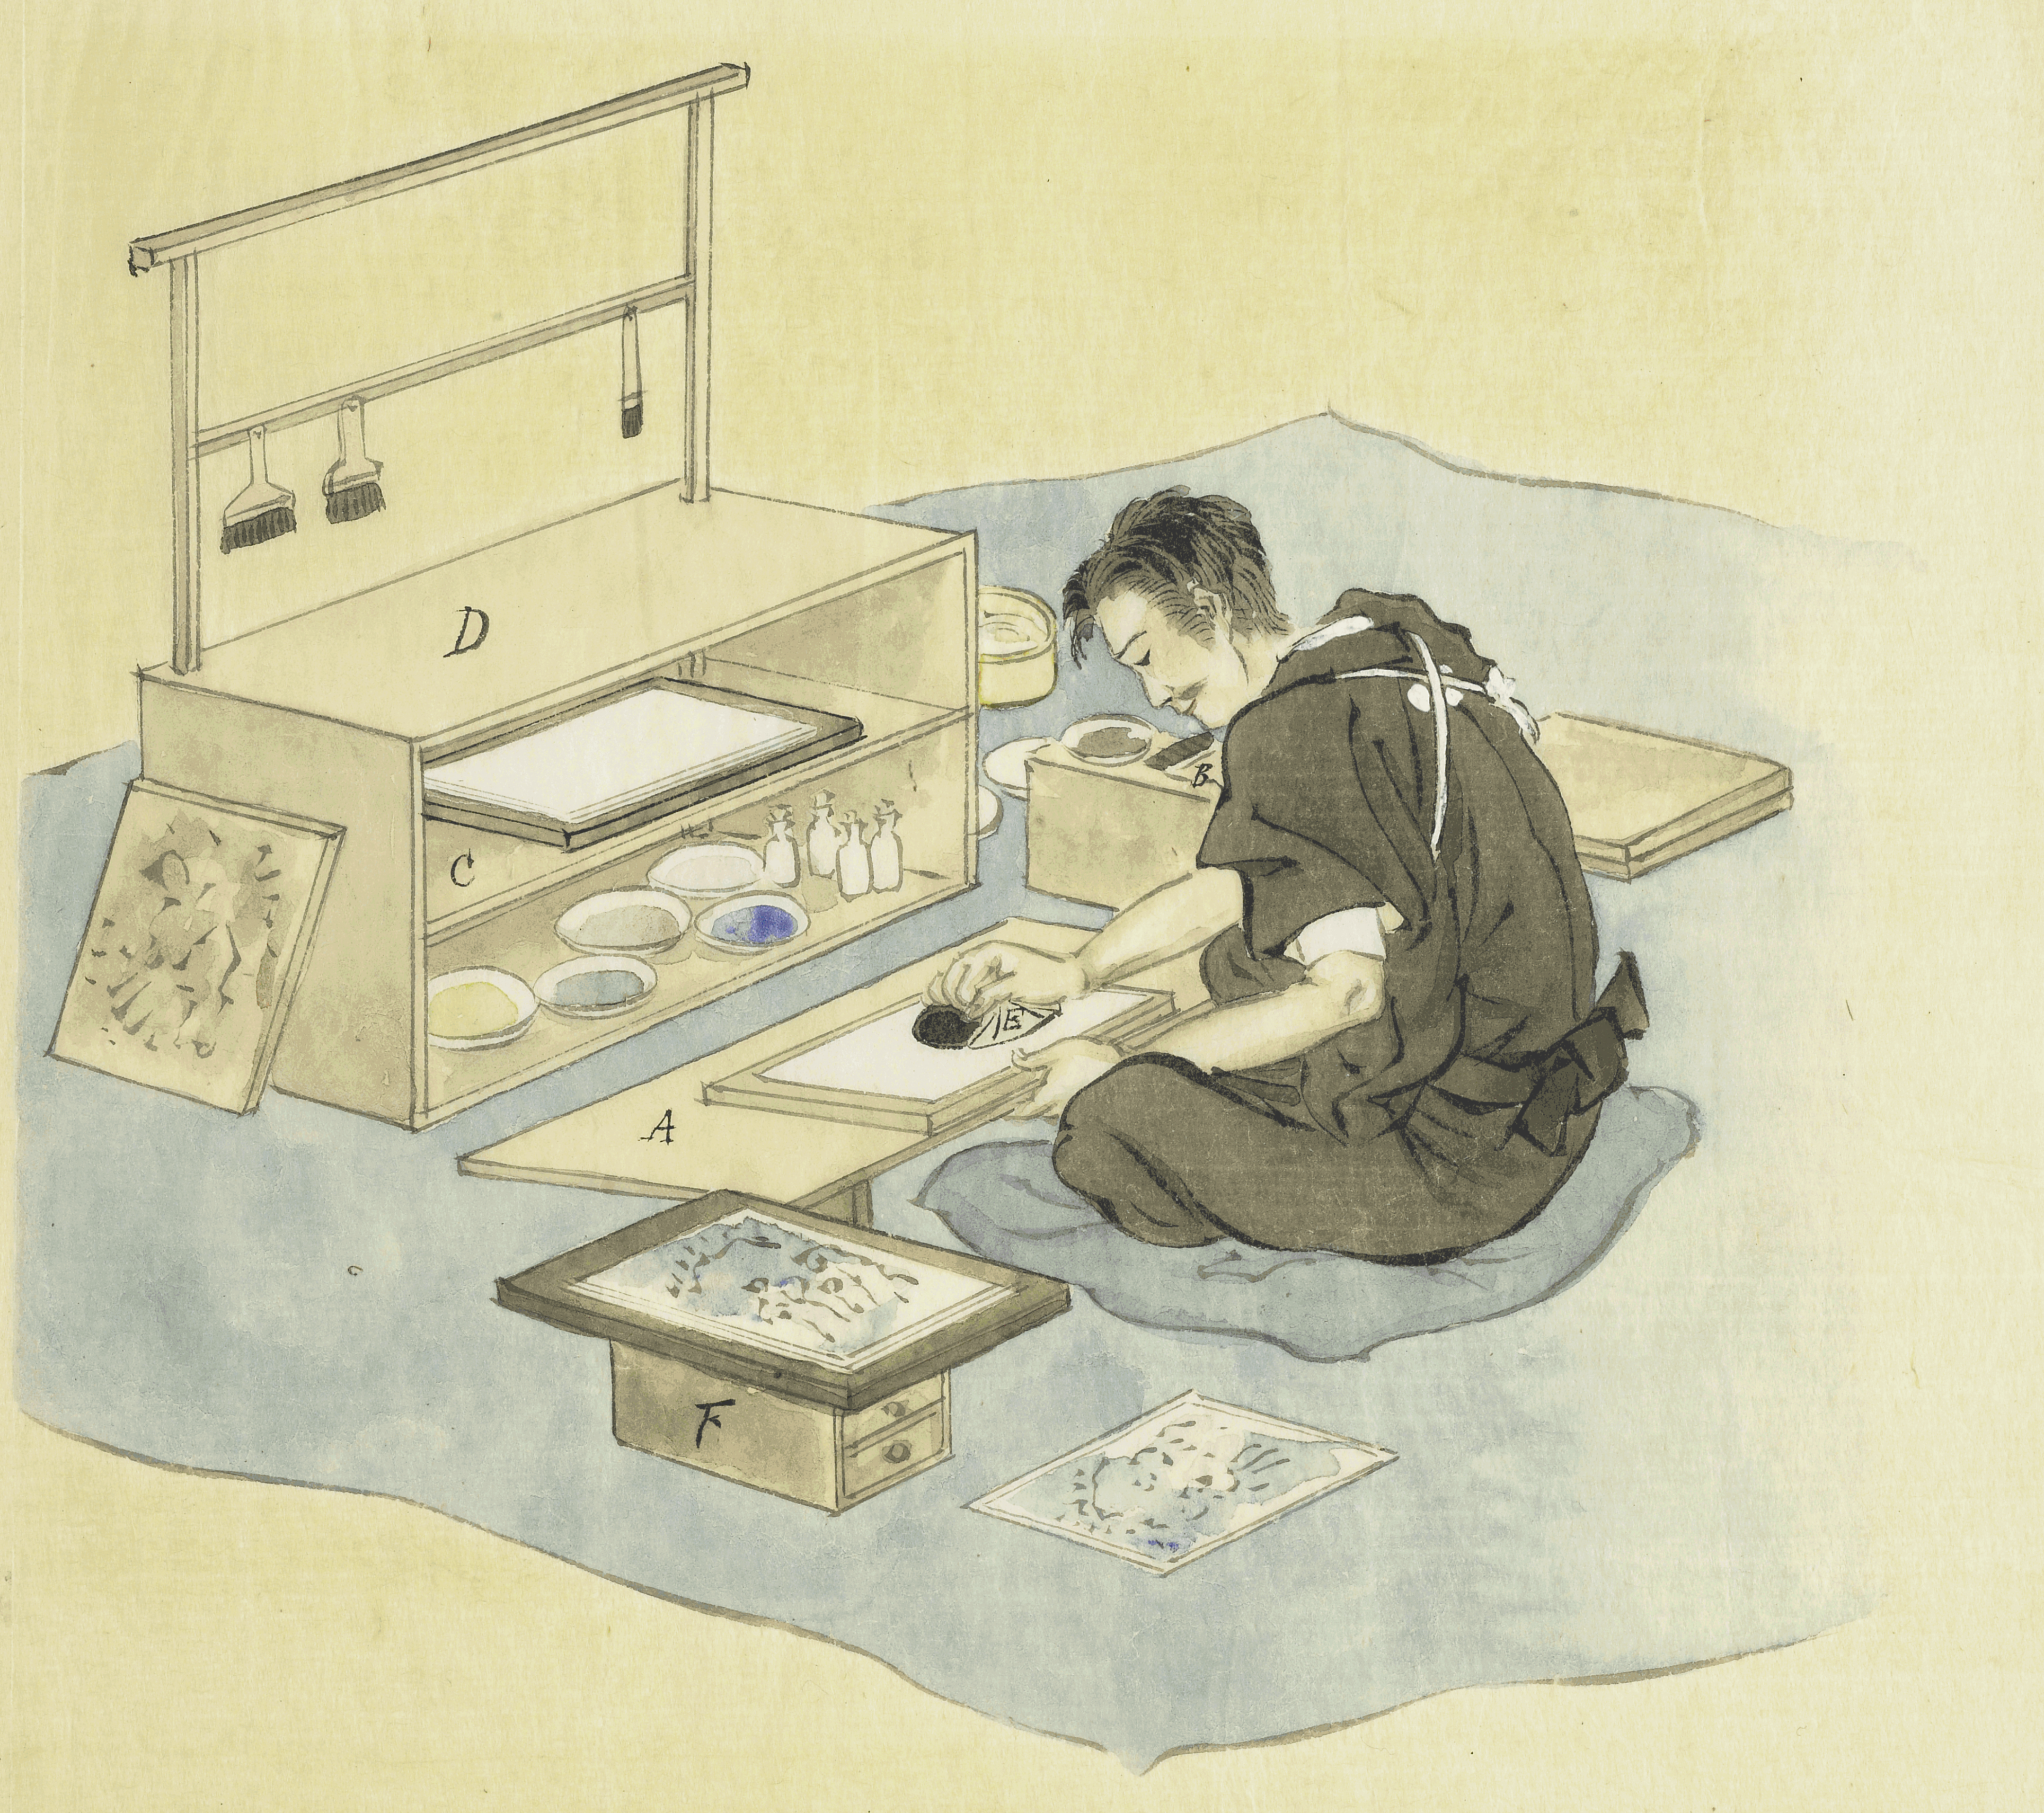 Watercolor illustration that accompanied the Tokuno gift showing the work of a Japanese printer